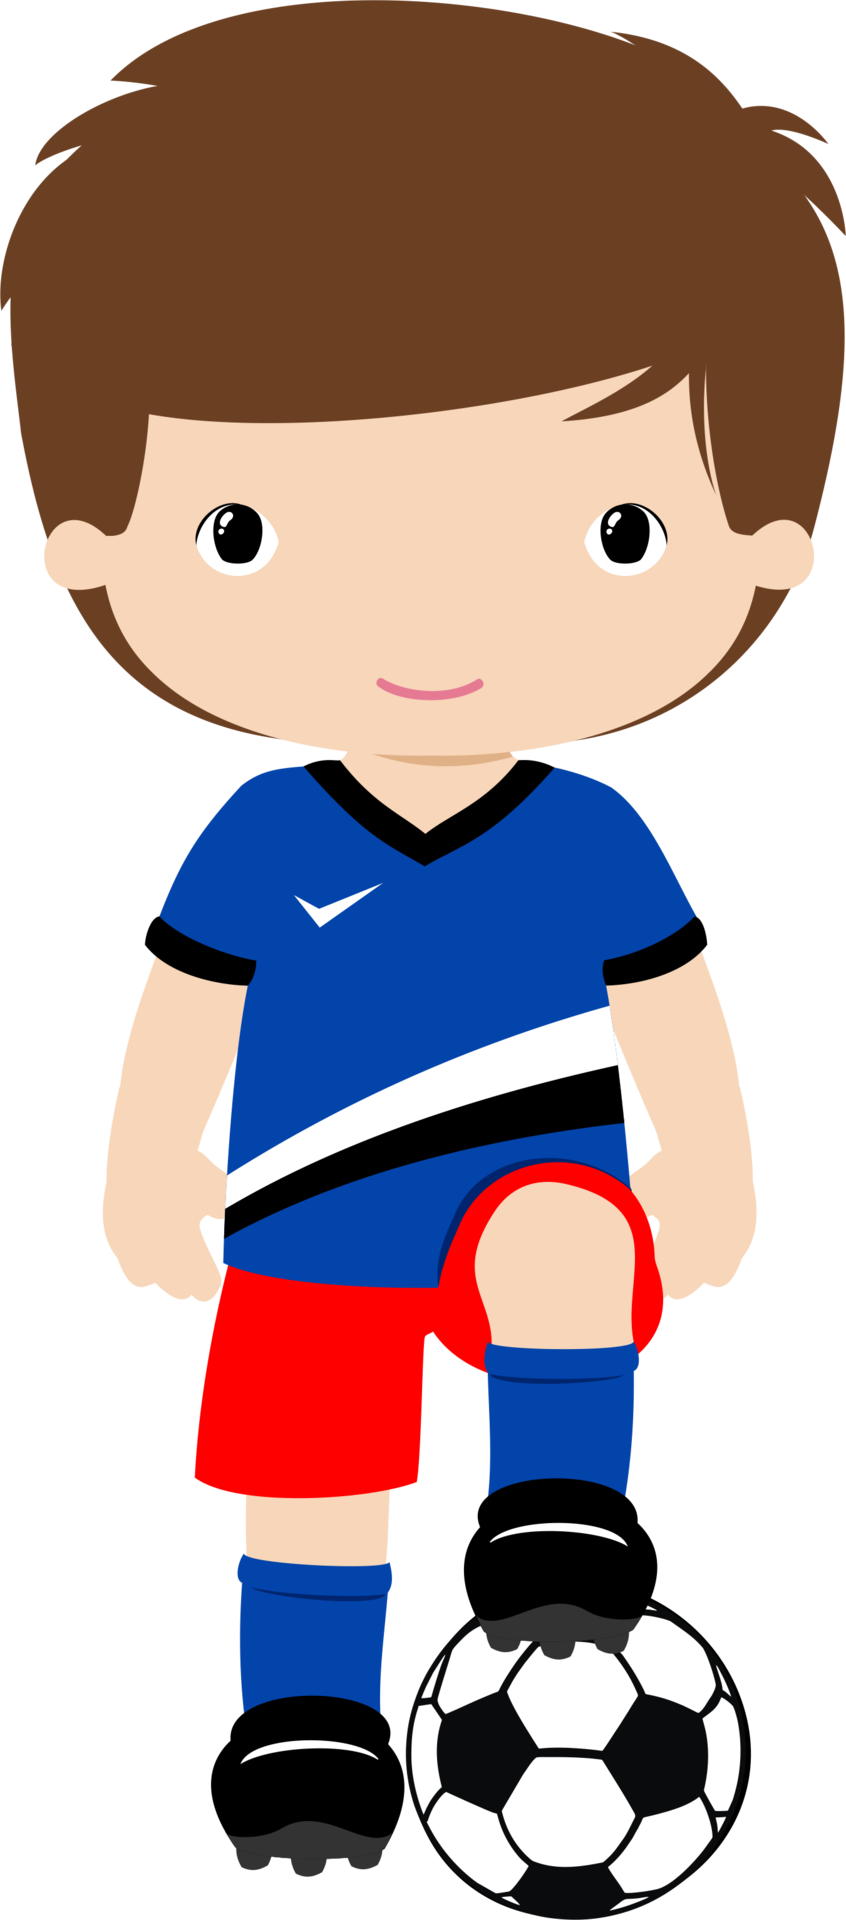 4shared View All Images At Png Folder Drawing For Kids Cartoon Design Soccer Birthday